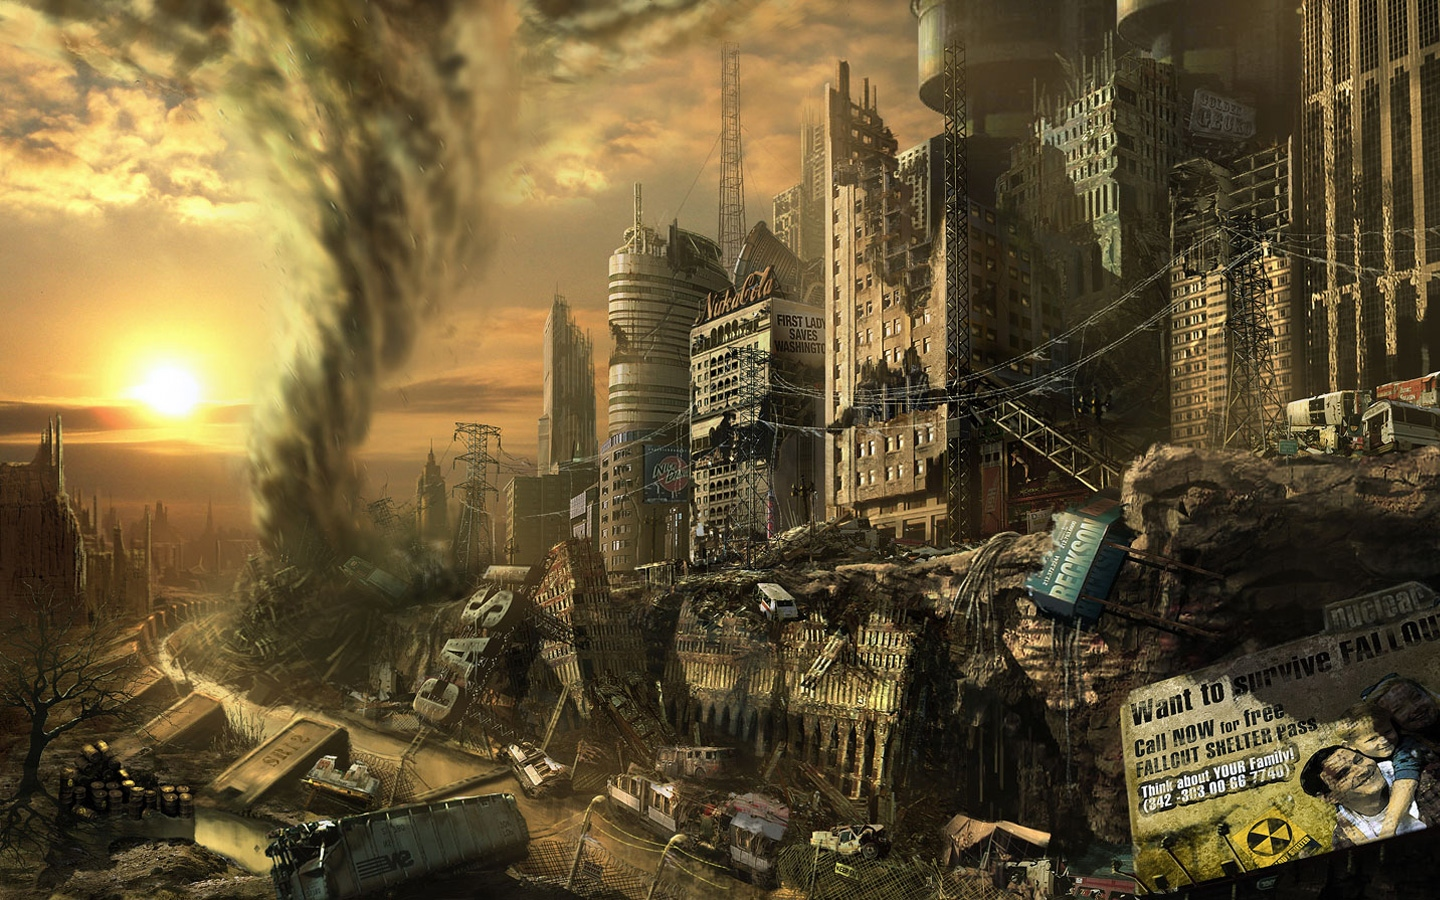 Fallout 3 wallpapers fallout 3 stock photos image fallout 3 wallpapers and stock photos thecheapjerseys Gallery